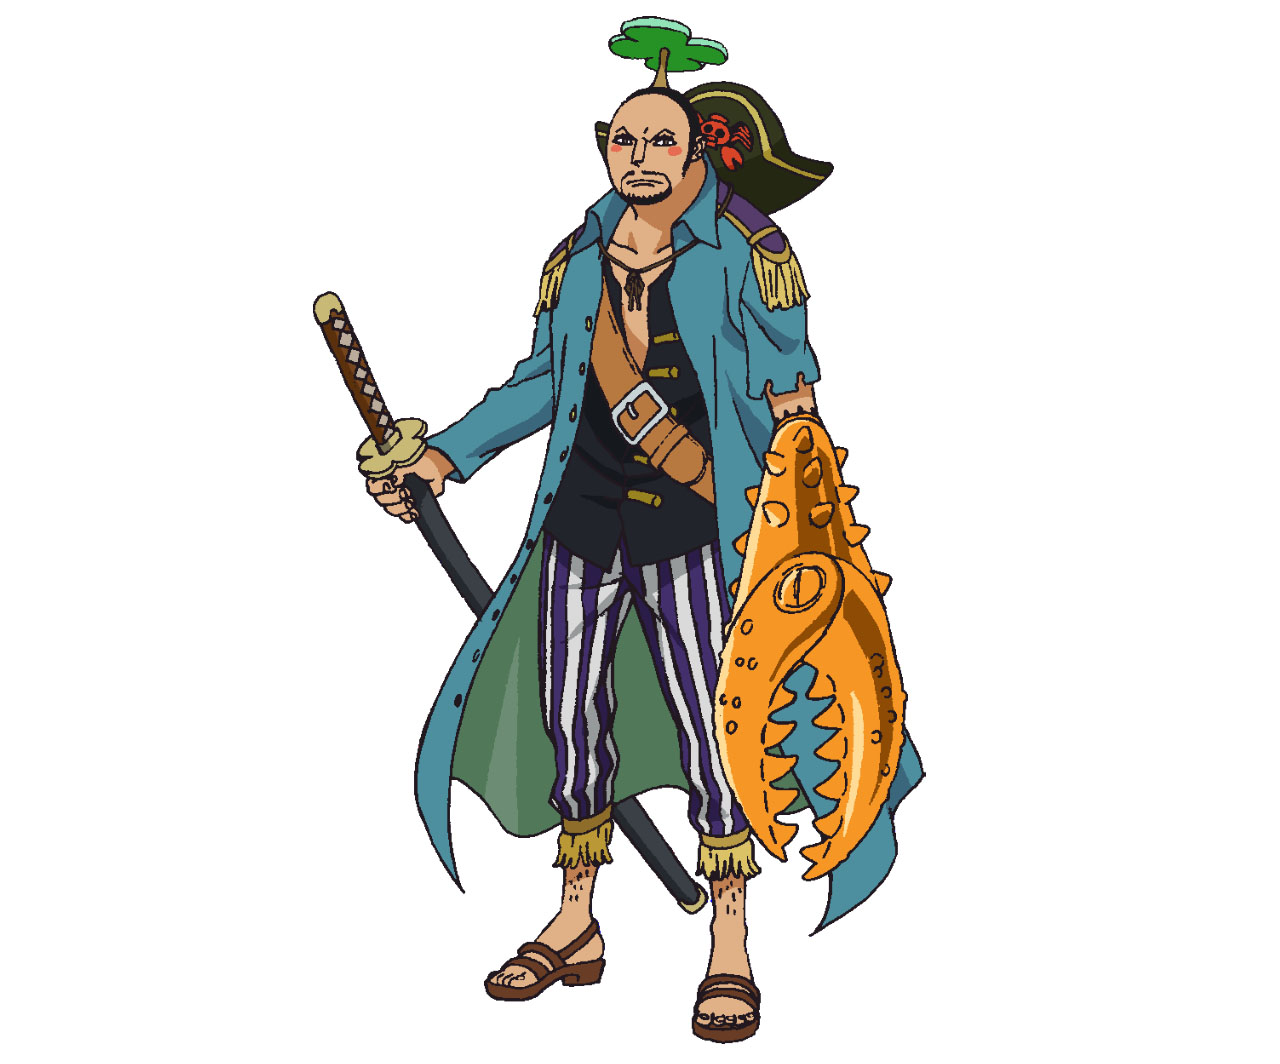 https://one-piece.com/assets/images/anime/character/data/Gyro/img.jpg